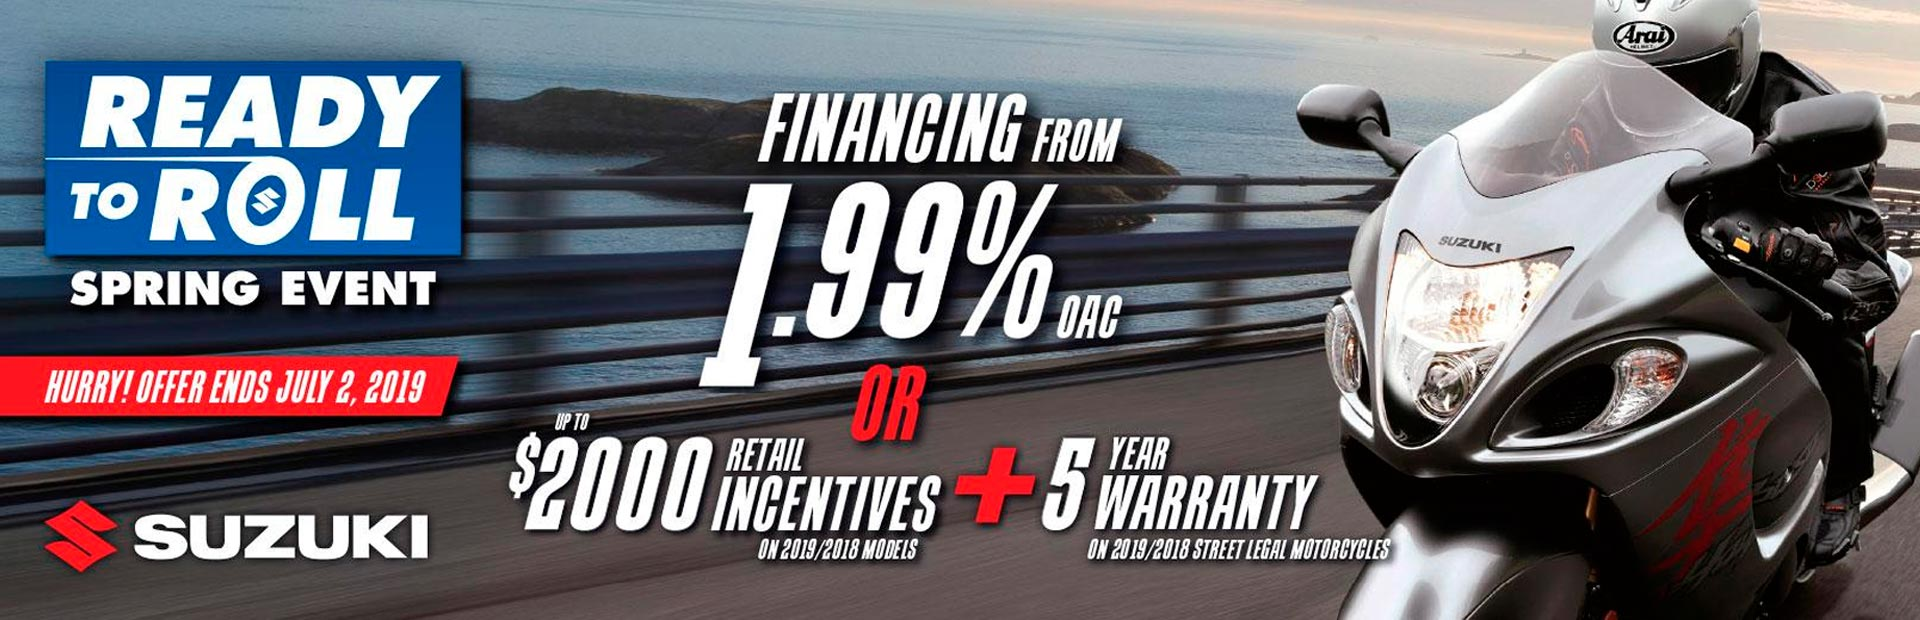 Suzuki: SUZUKI ROLL INTO SPRING SALES EVENT - MOTORCYCLE